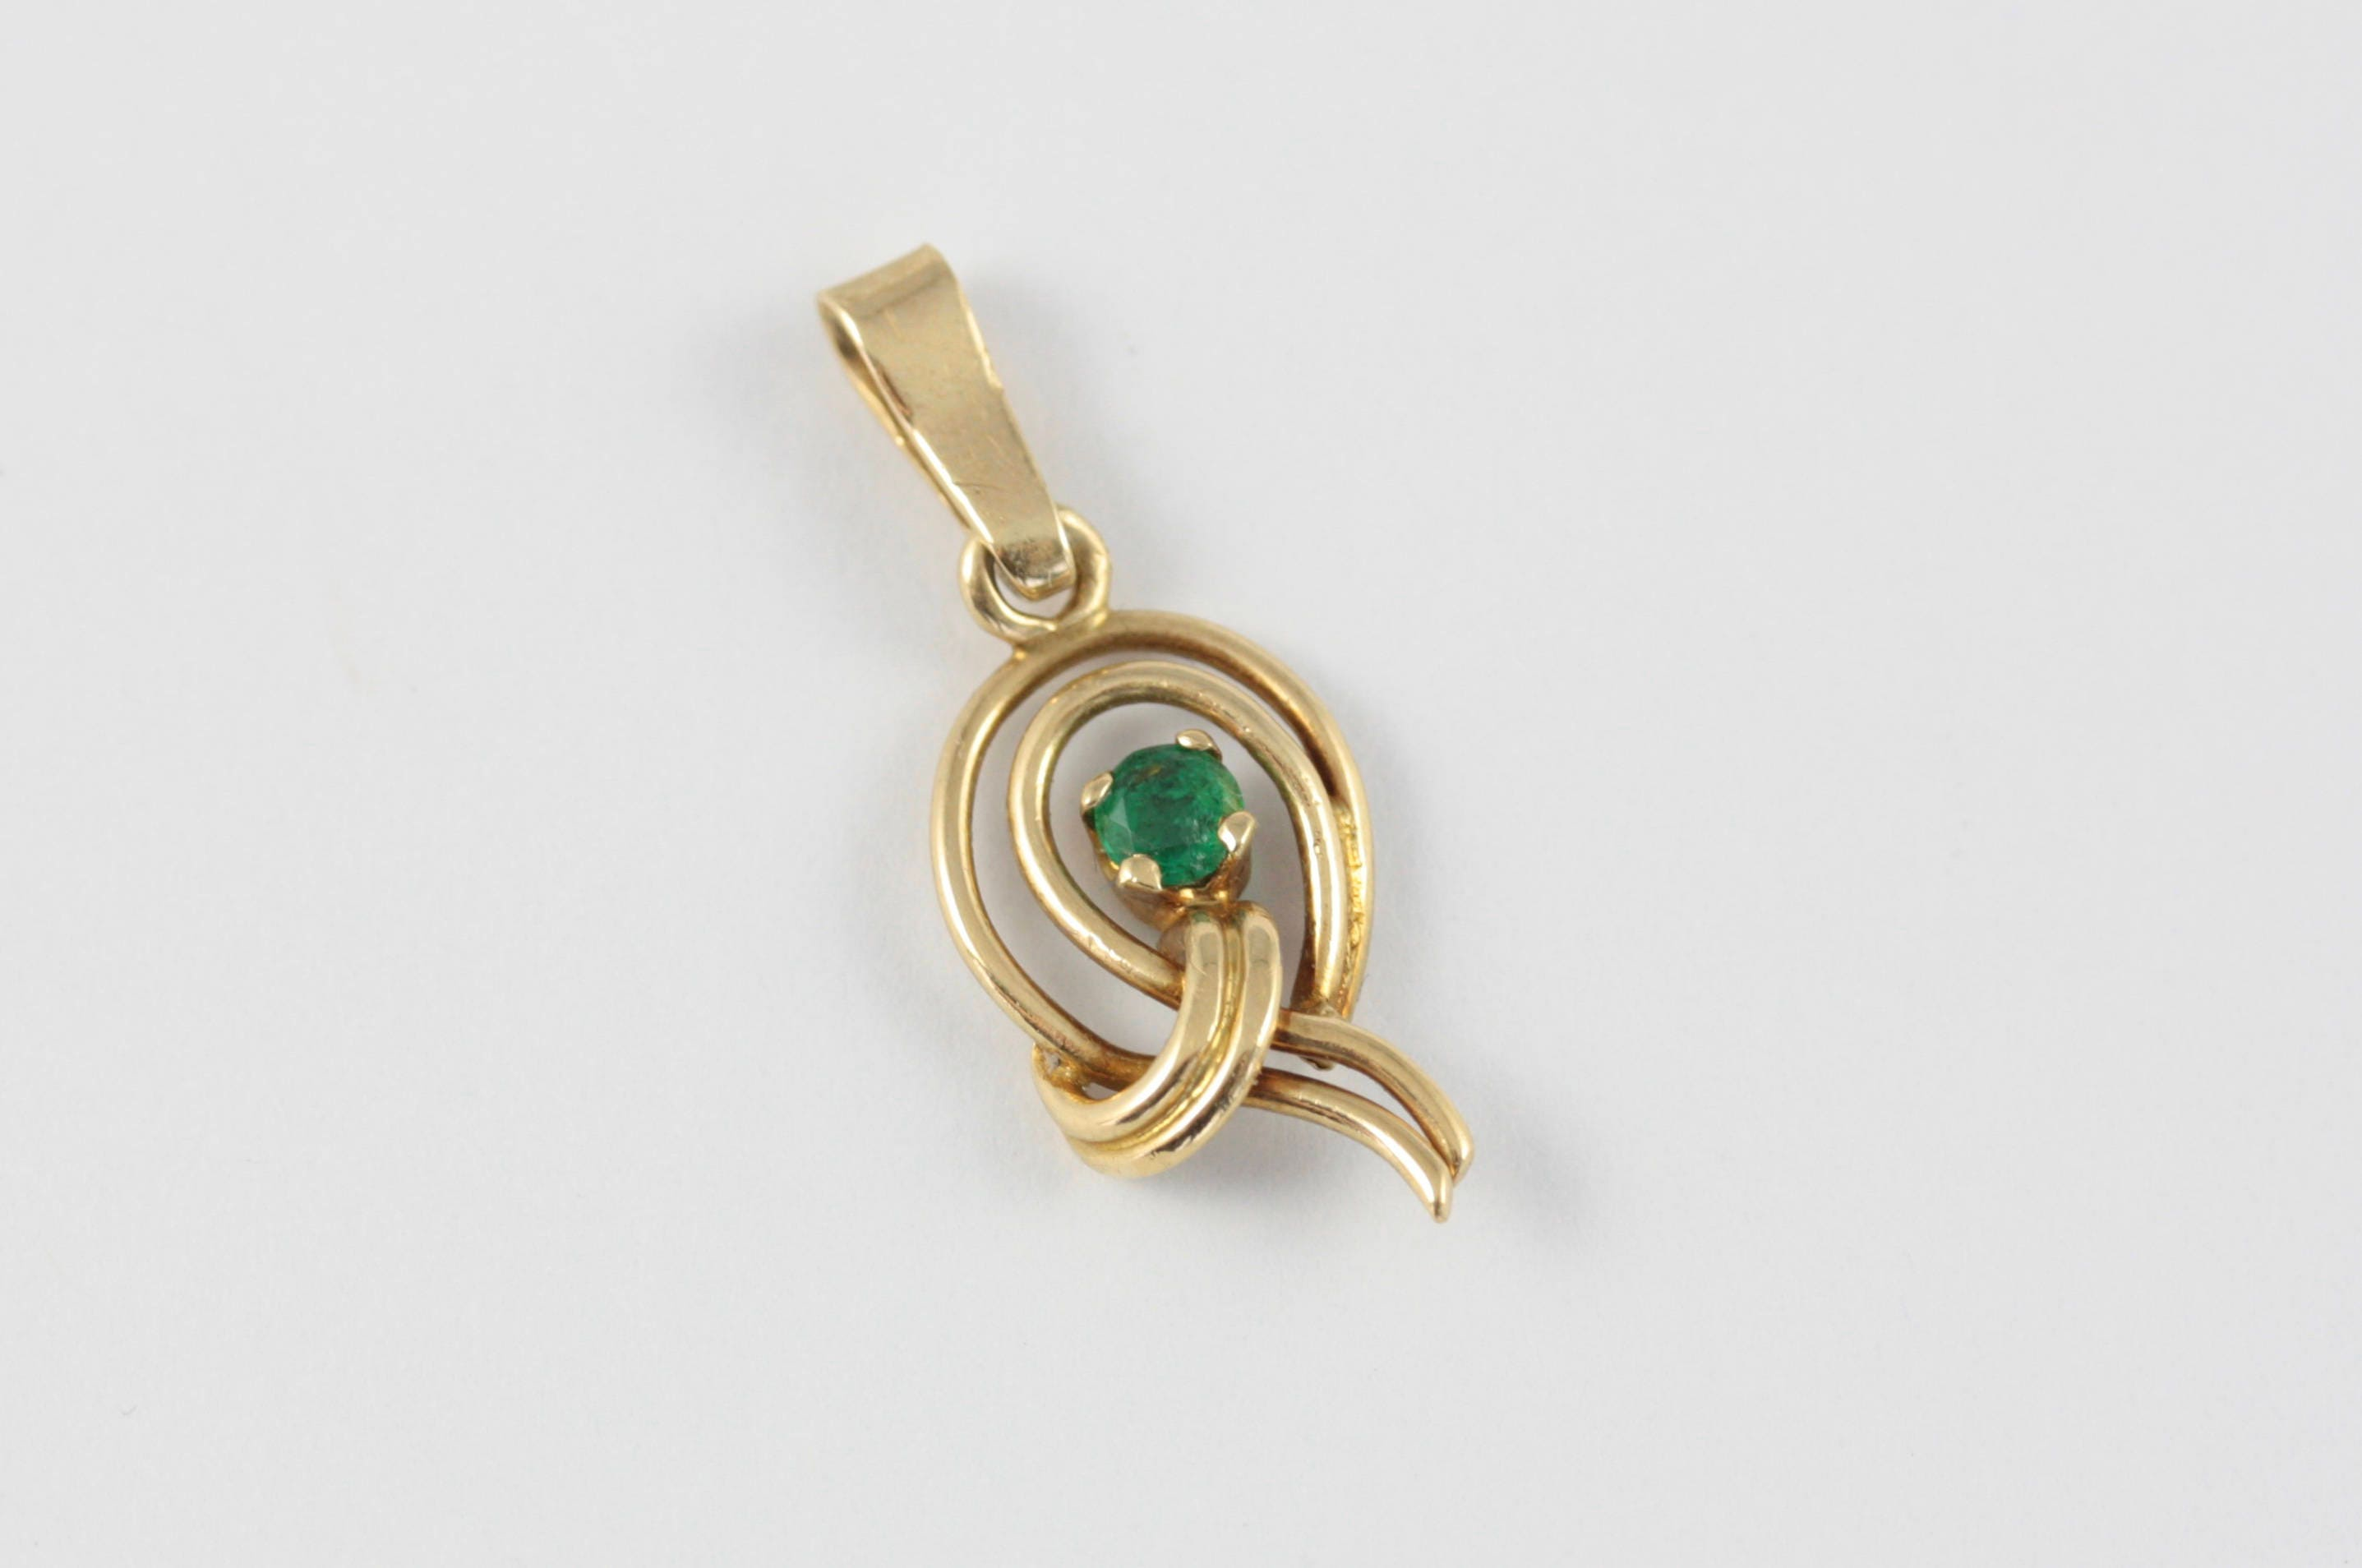 of stone lor pendant irish house green with centre sku silver claddagh sterling